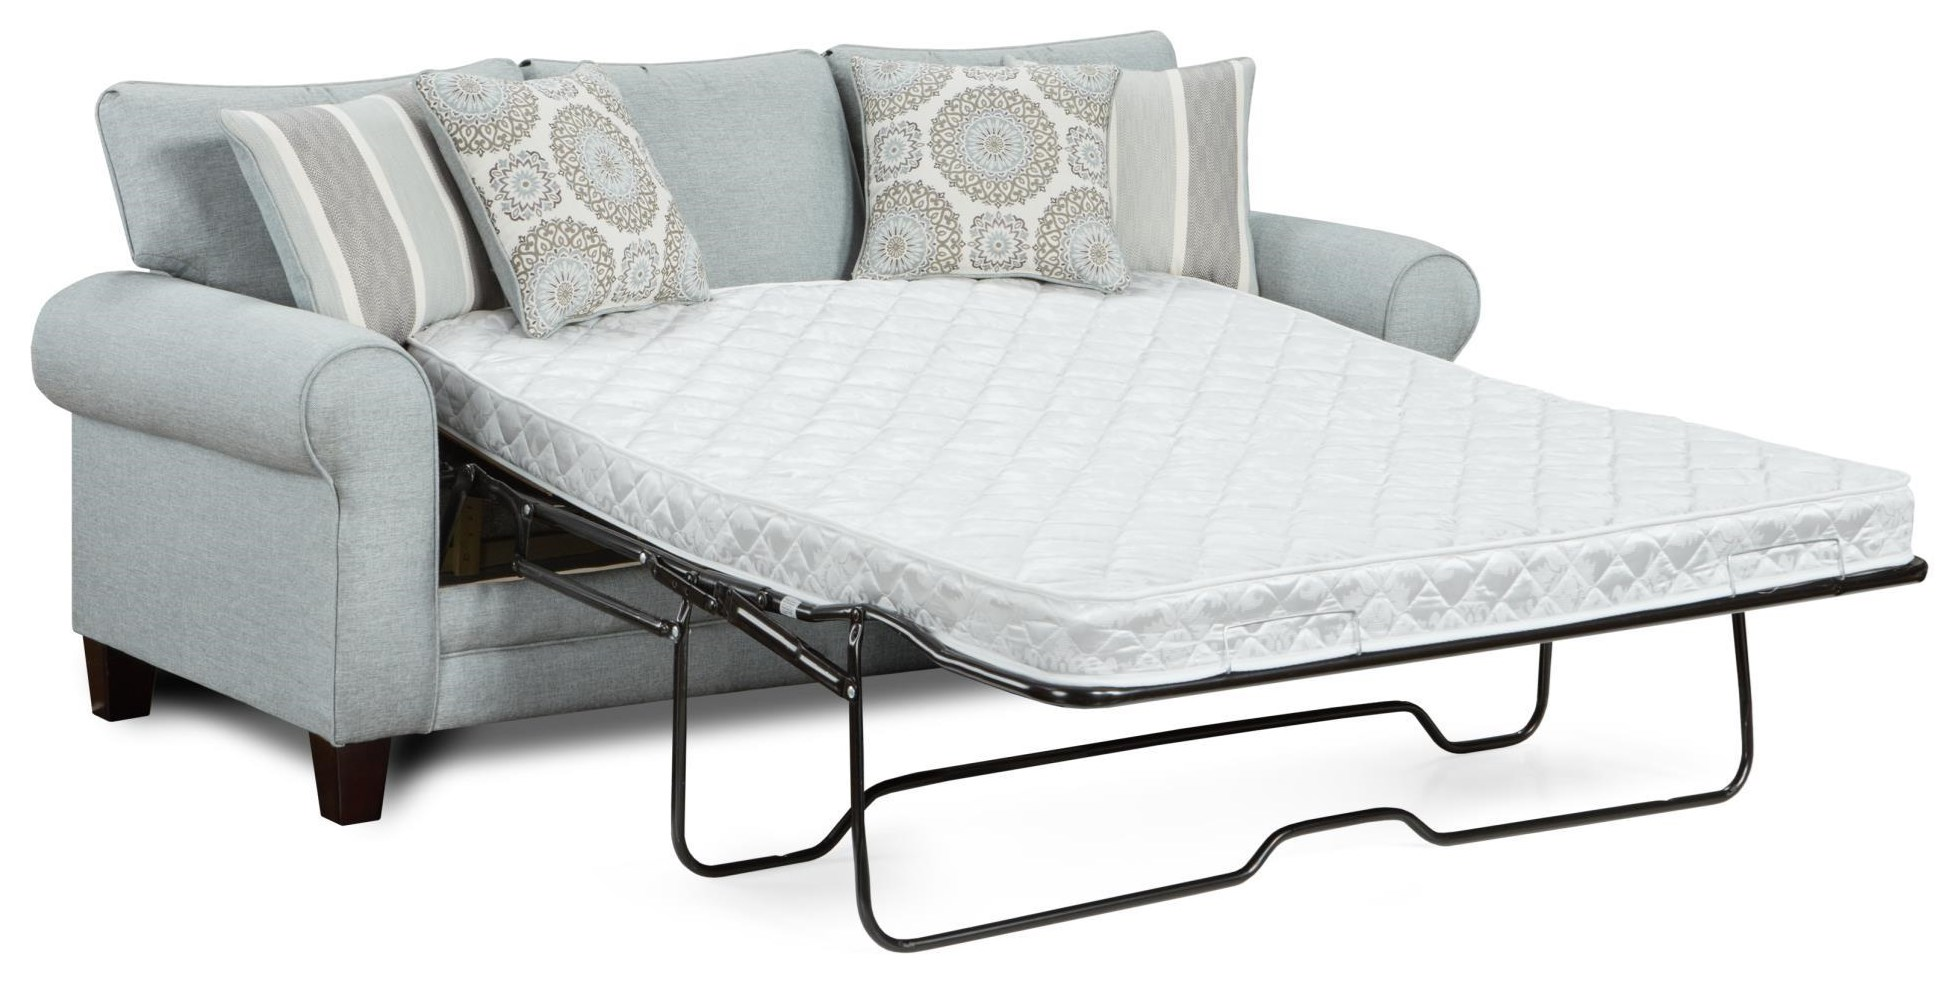 Fusion Furniture Mysteria Queen Sleeper With Accent Pillows Morris Home Sleeper Sofas